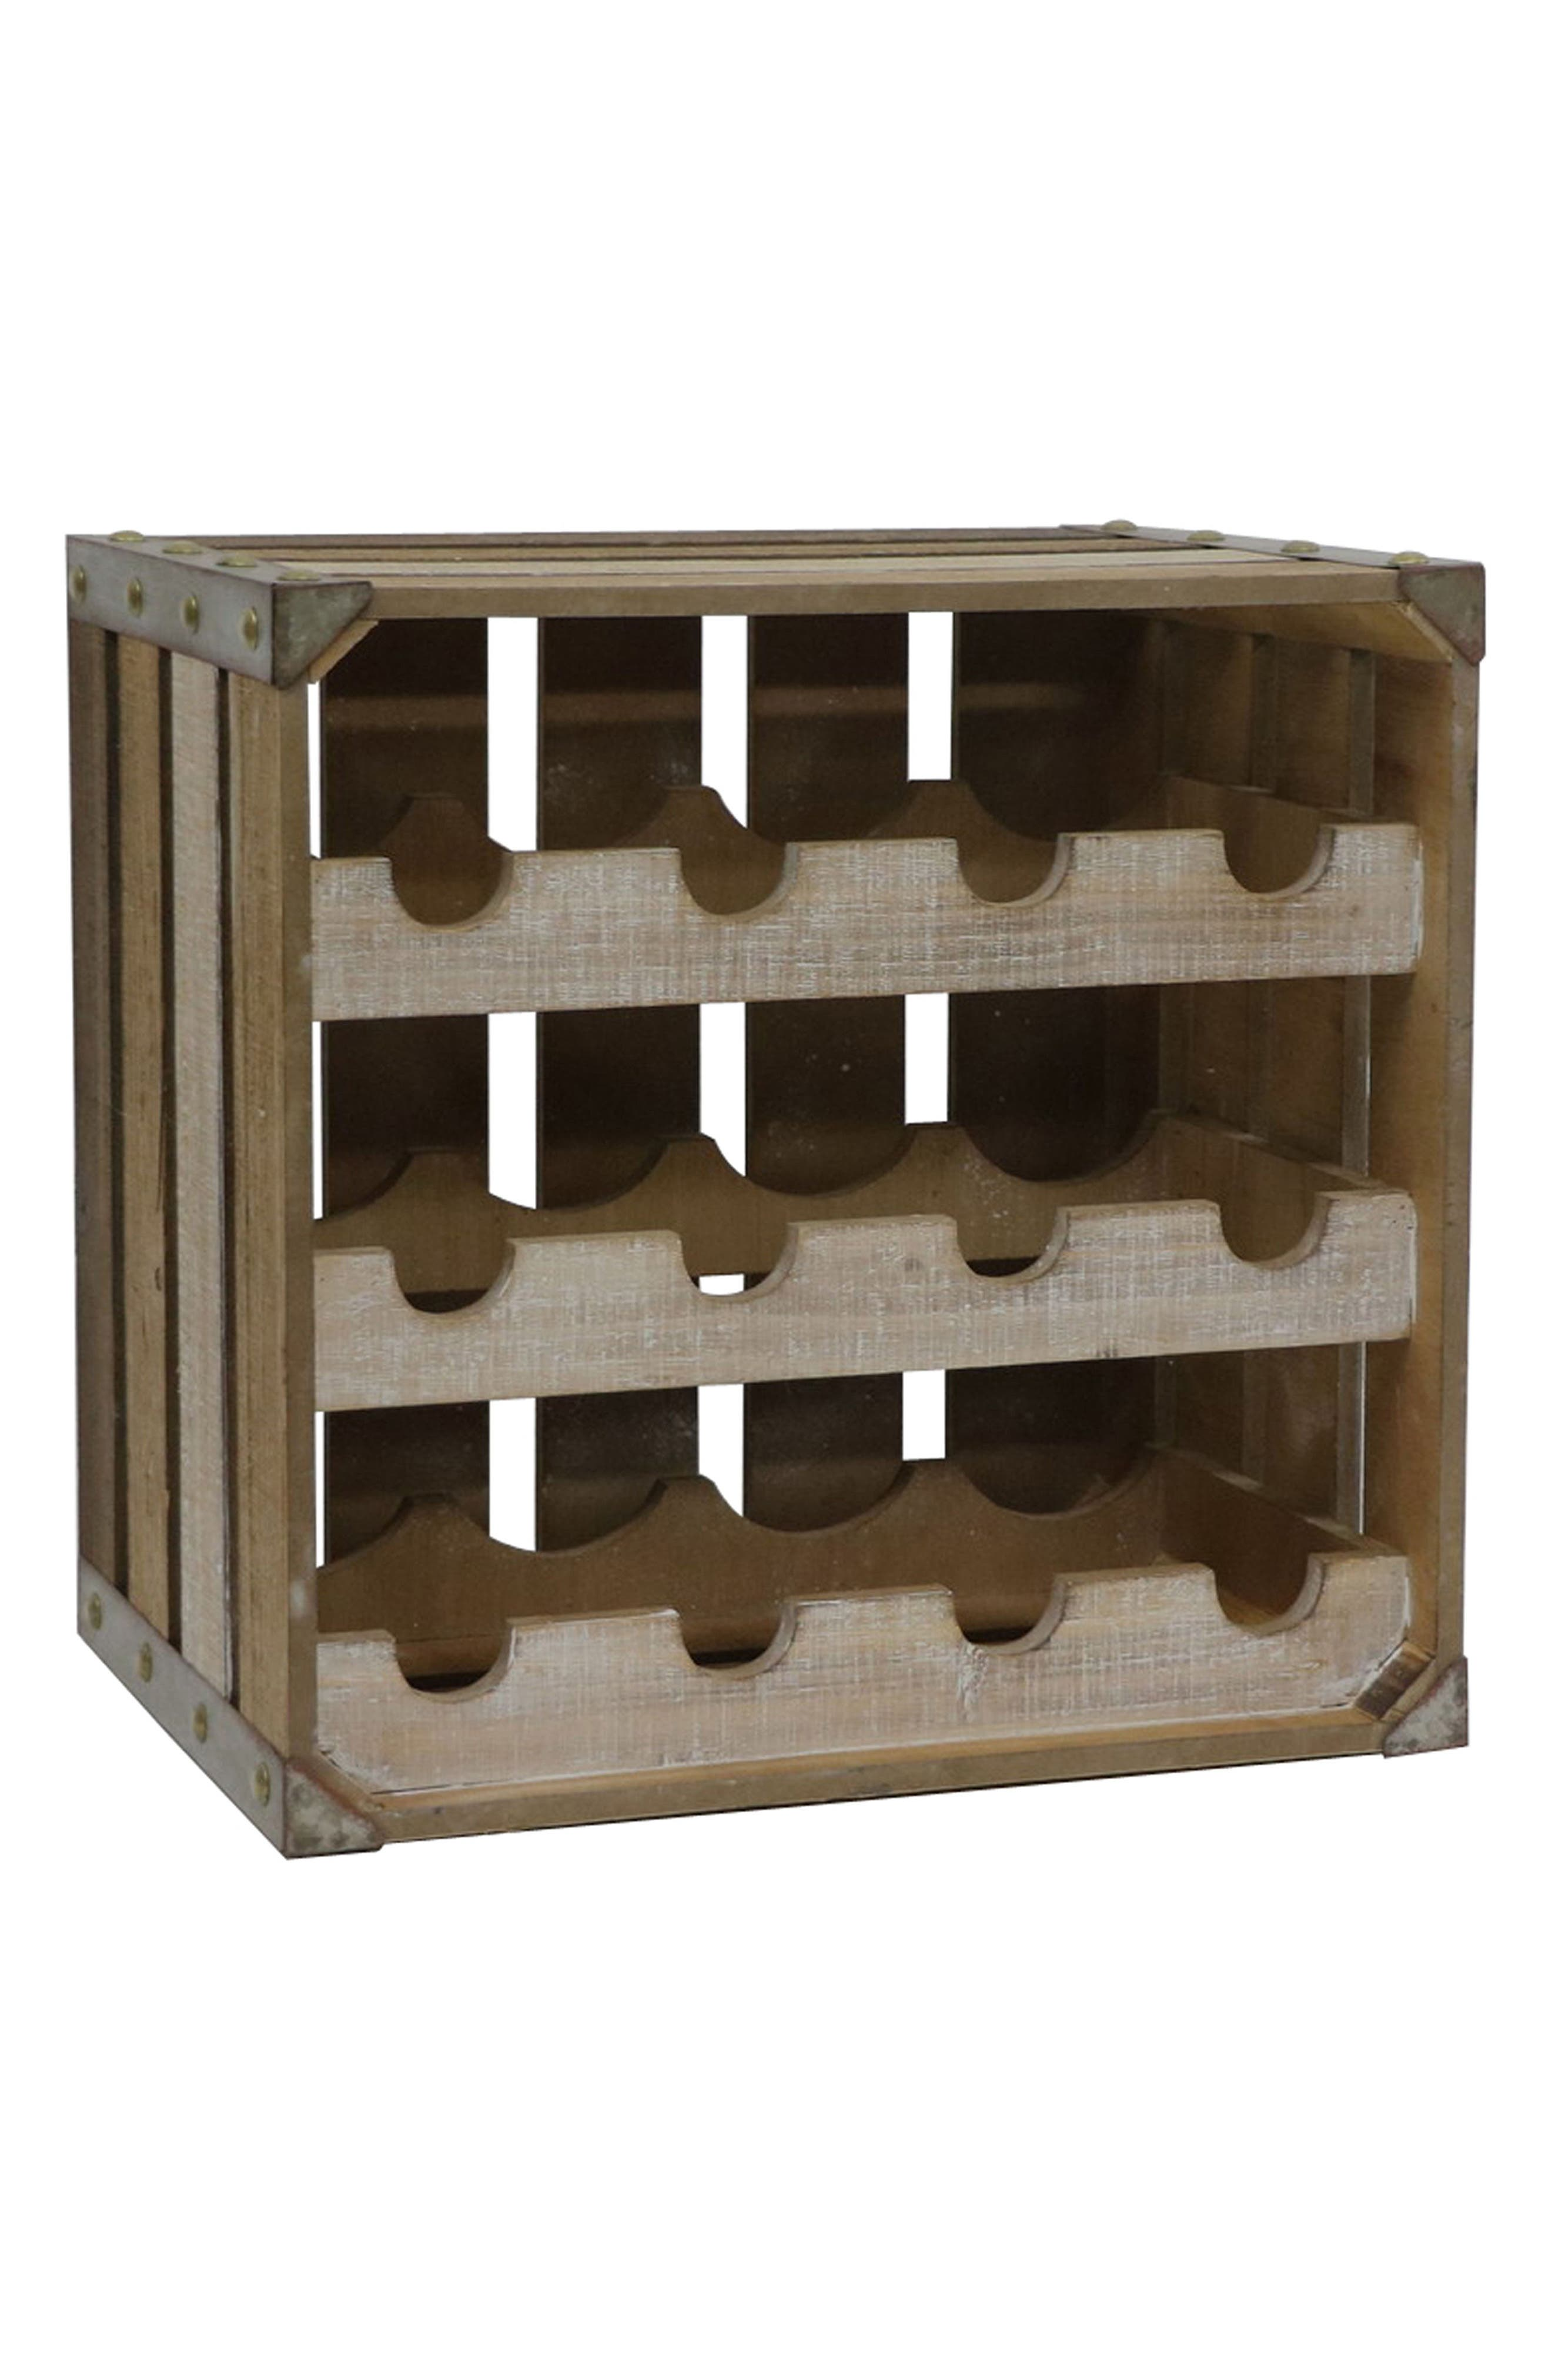 Main Image - Crystal Art Gallery Wooden Wine Crate